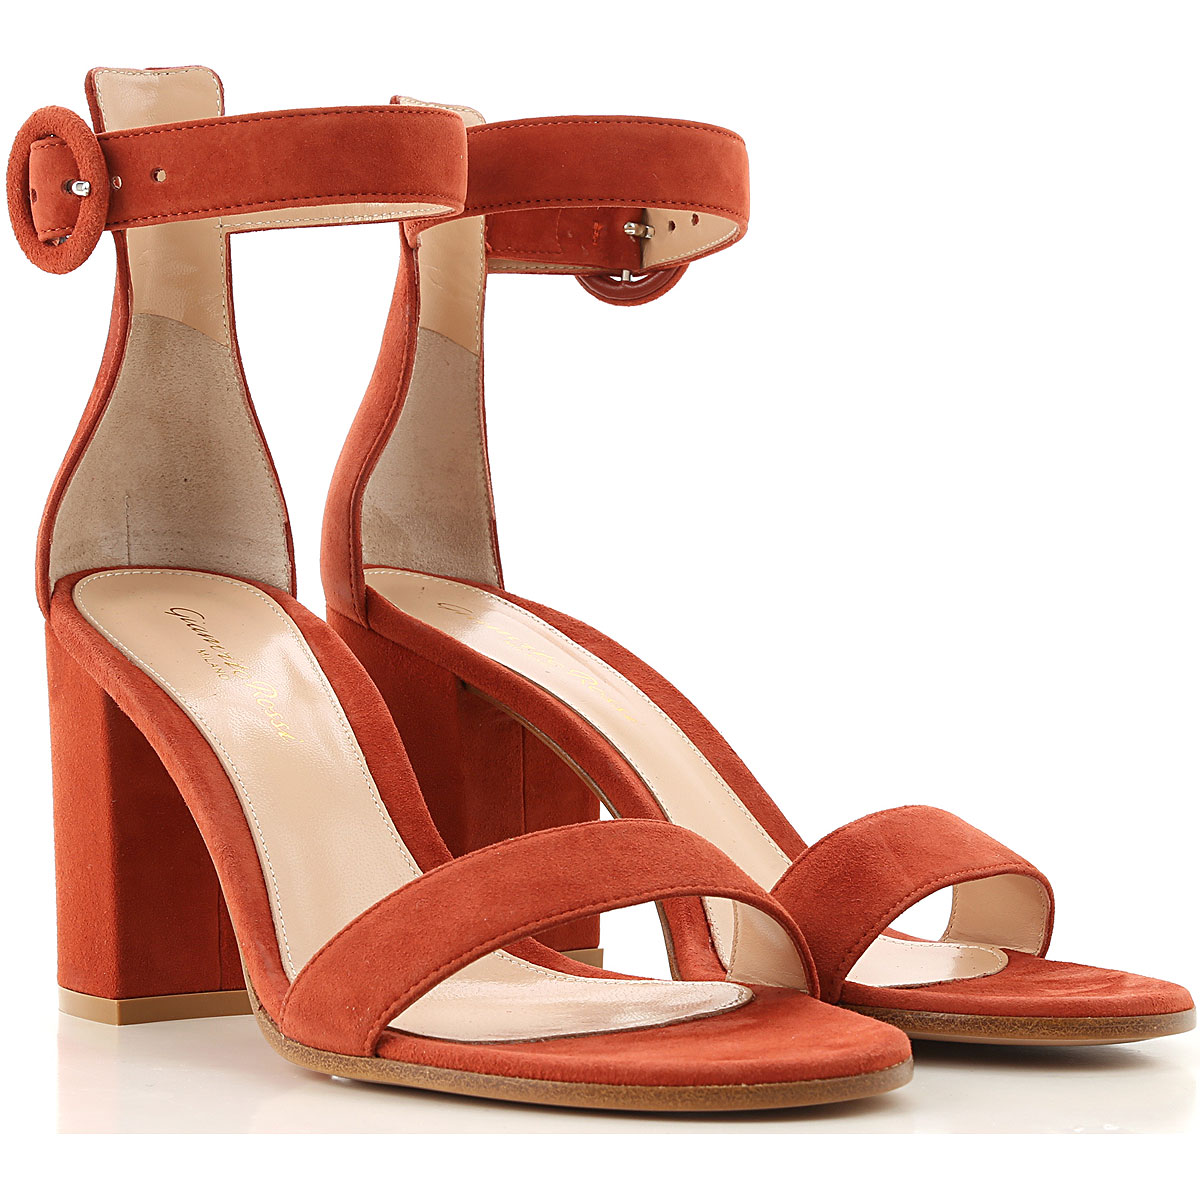 Gianvito Rossi Sandals for Women On Sale, Brick, Suede leather, 2019, 10 5 6 6.5 7 8 9